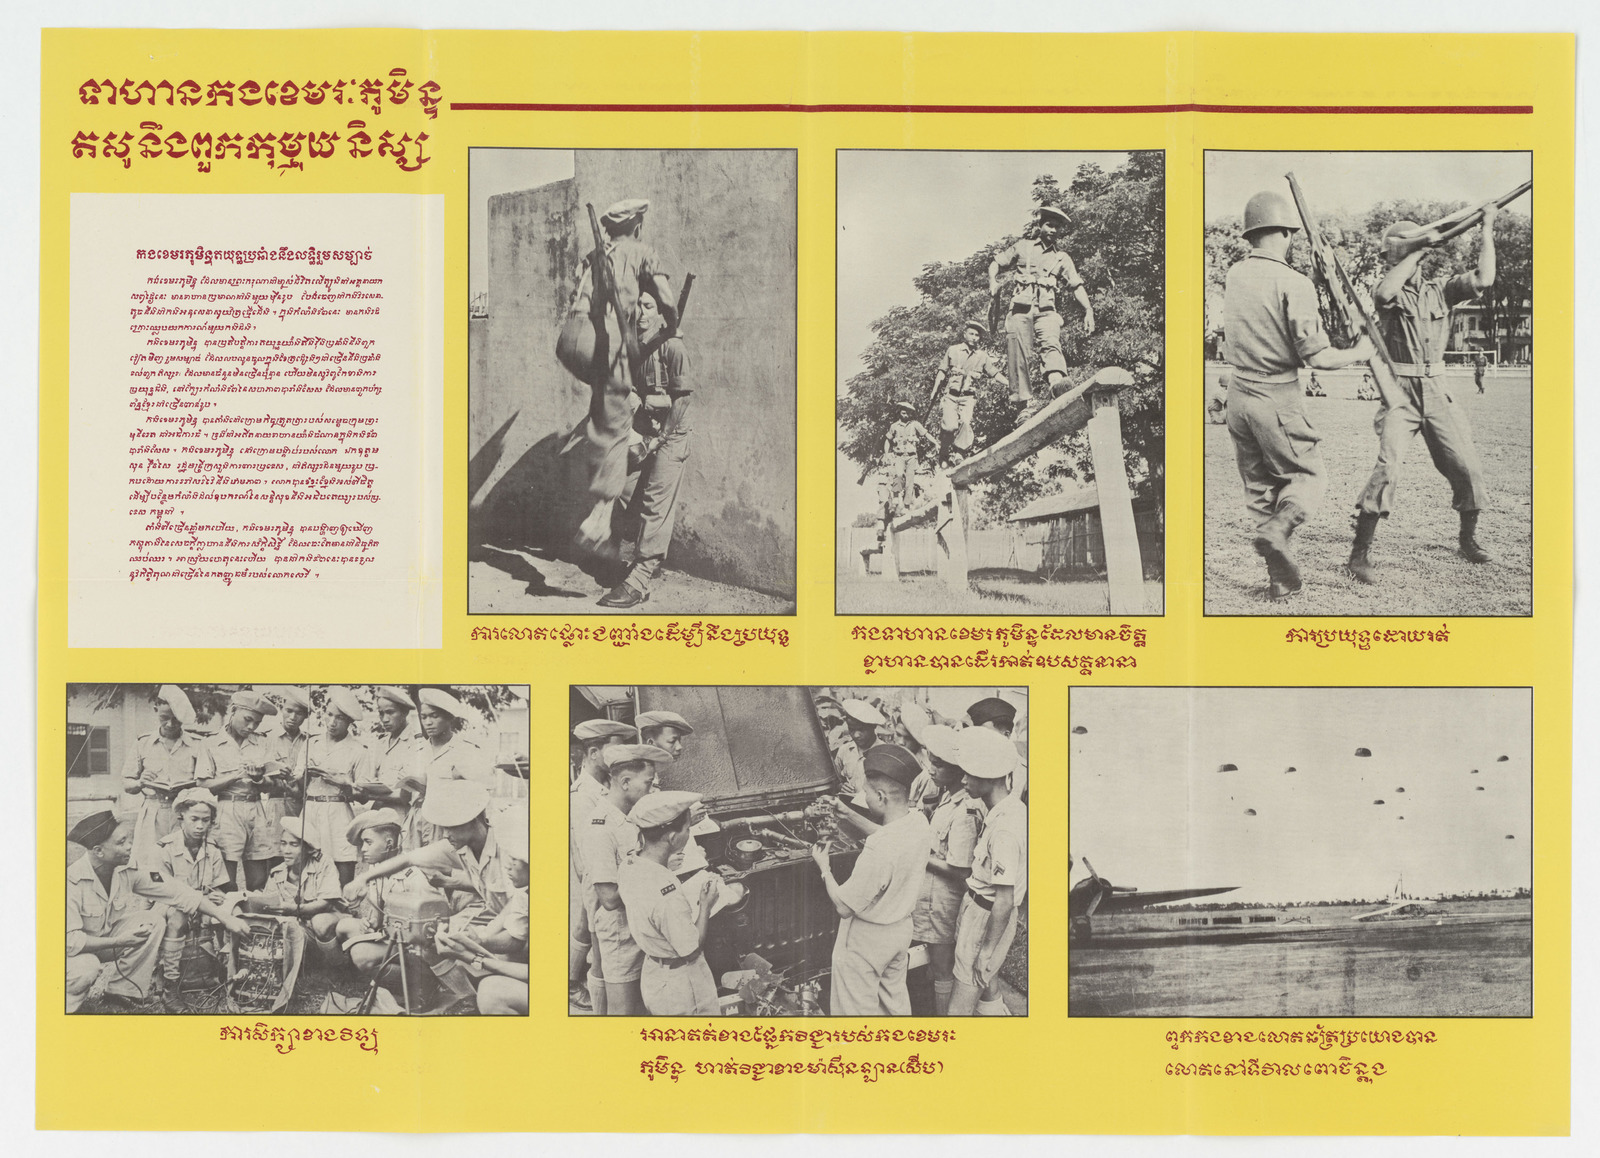 Cambodian Army Vs. Communists #2